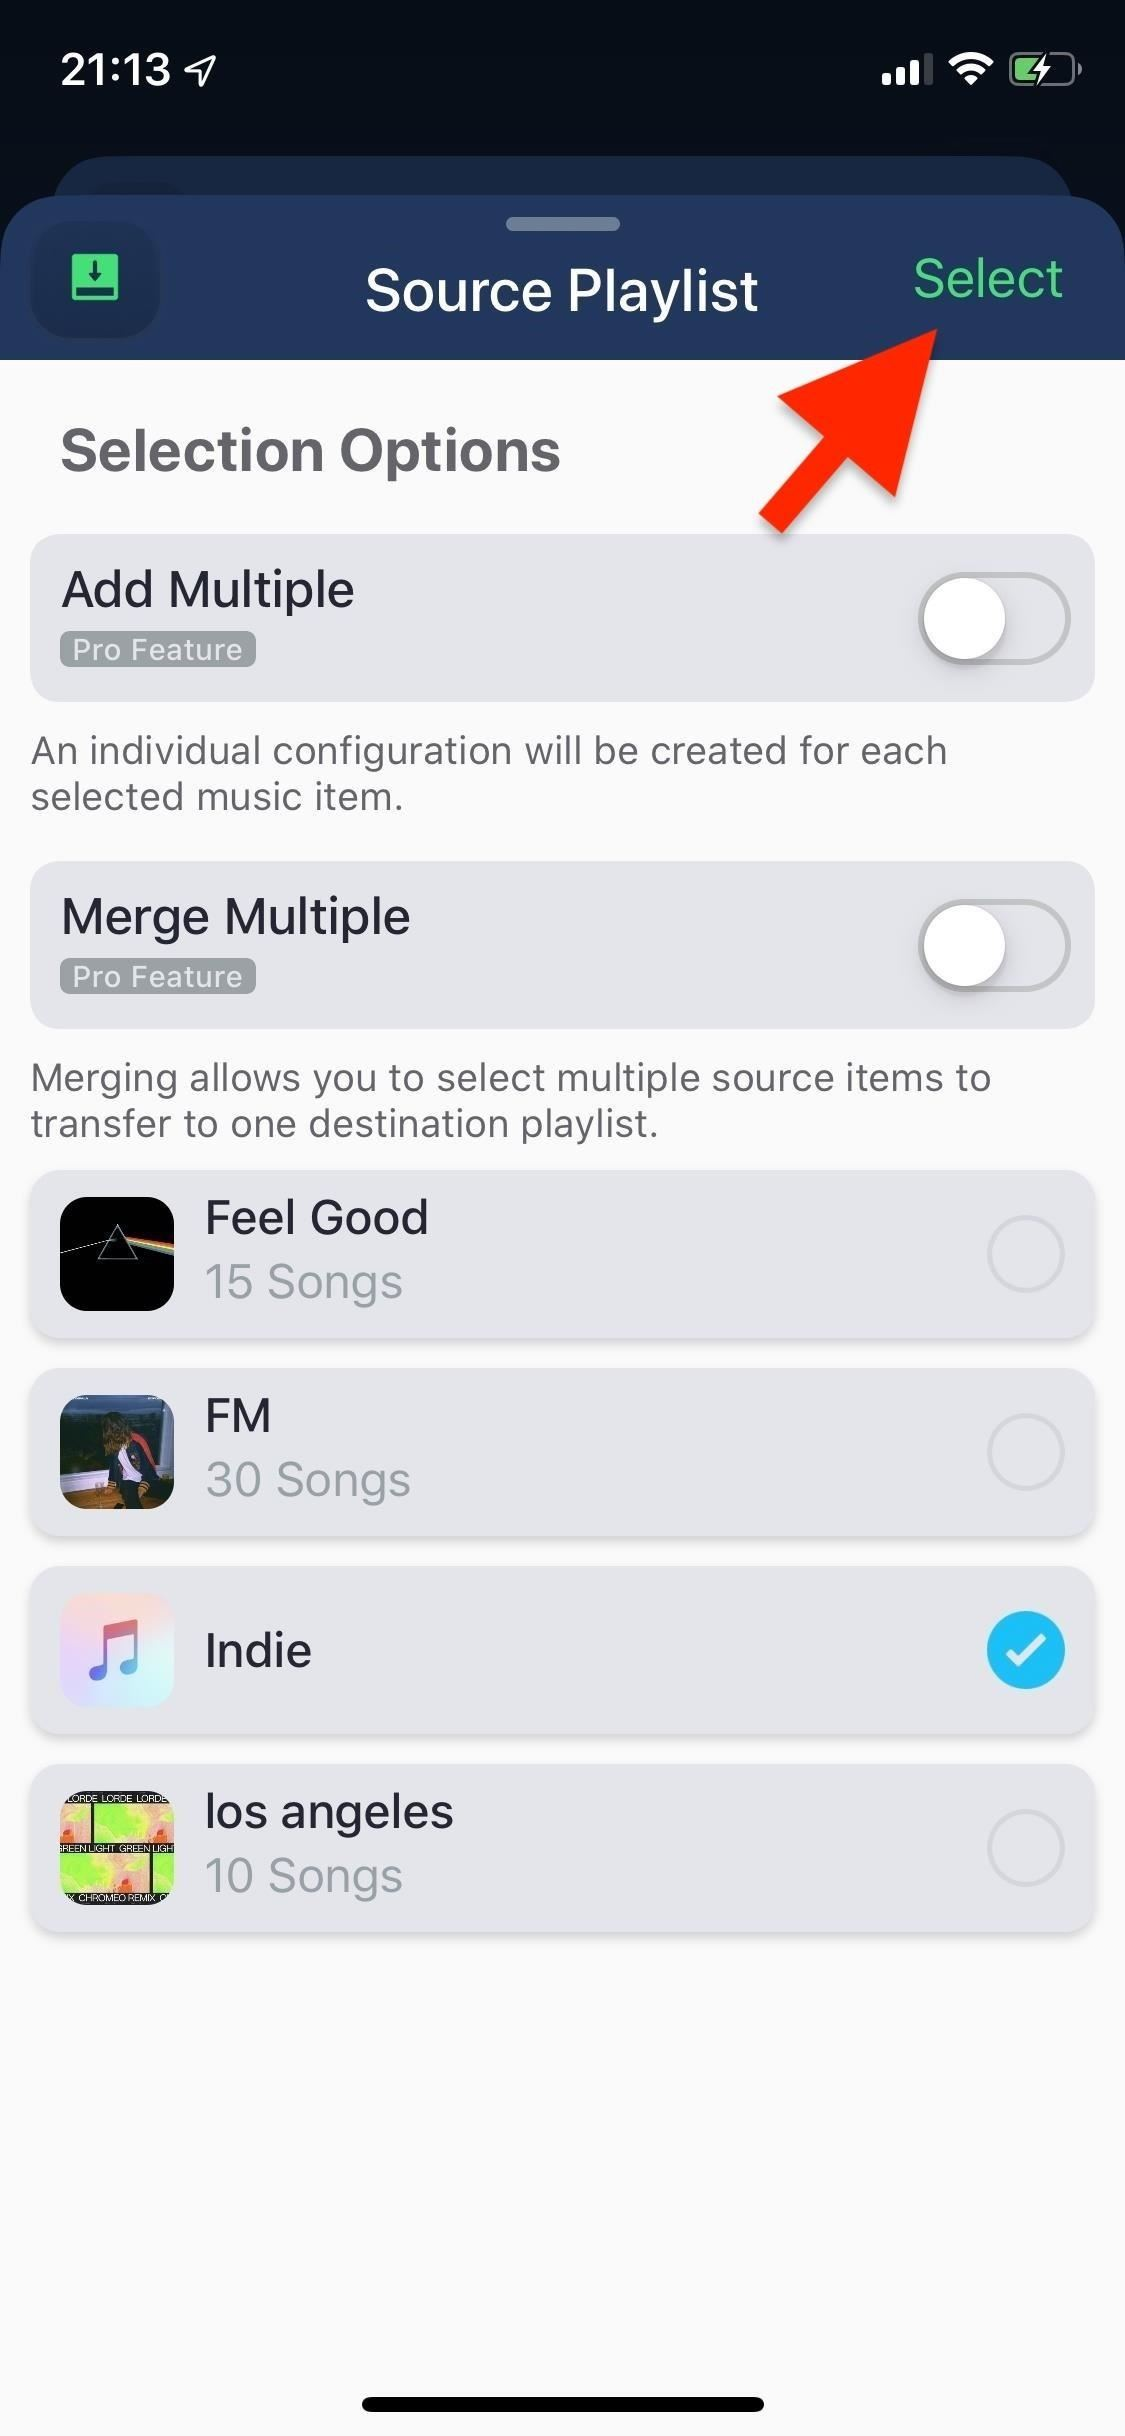 How to Transfer Your Apple Music Playlist to Spotify an iPhone or Android Phone